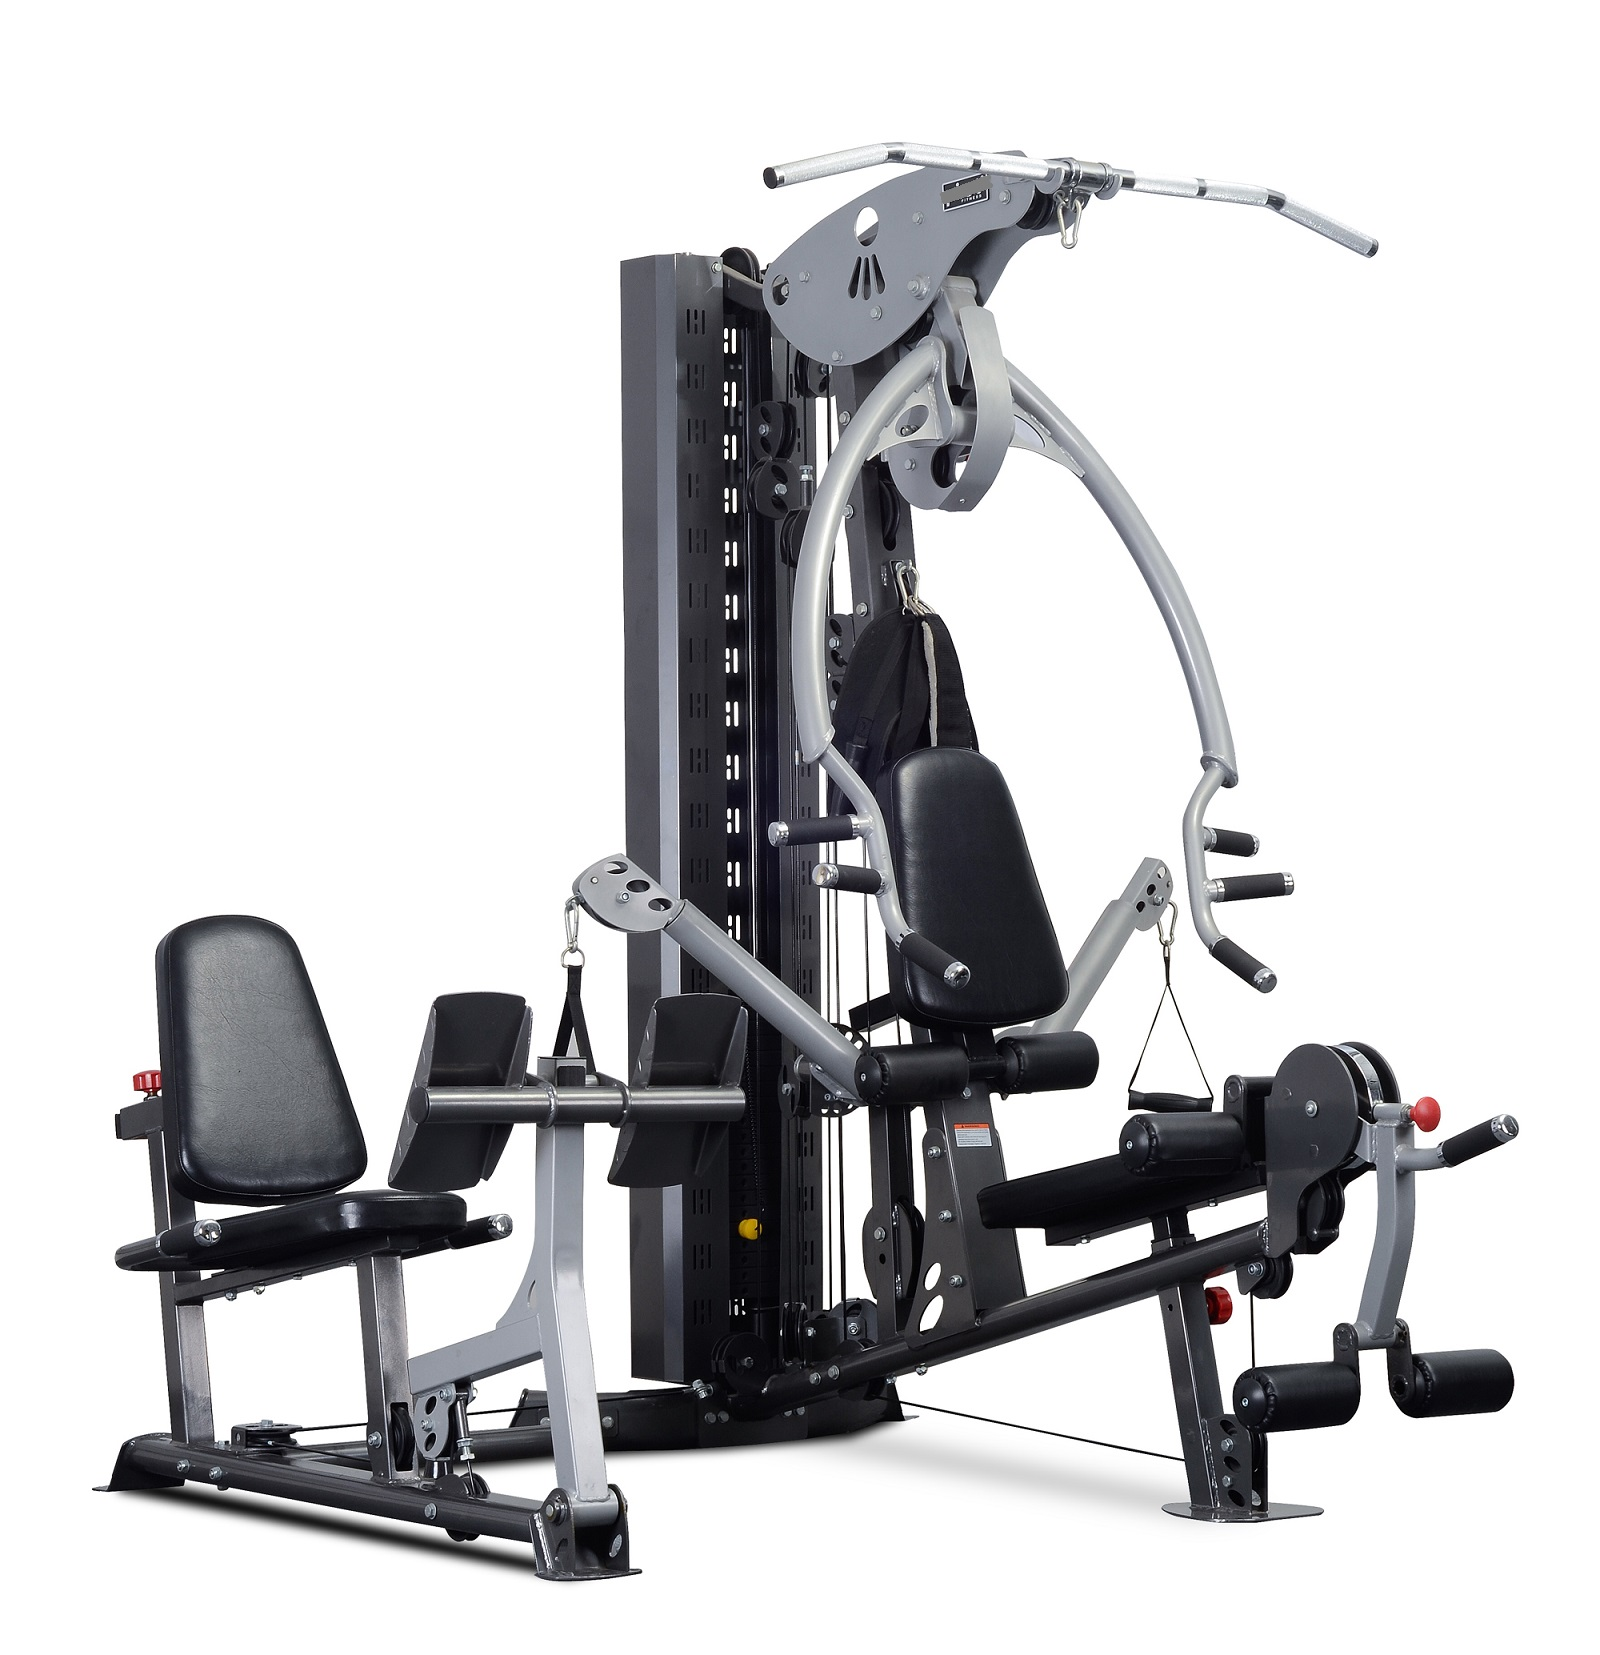 Revolution c home gym with leg press southside fitness